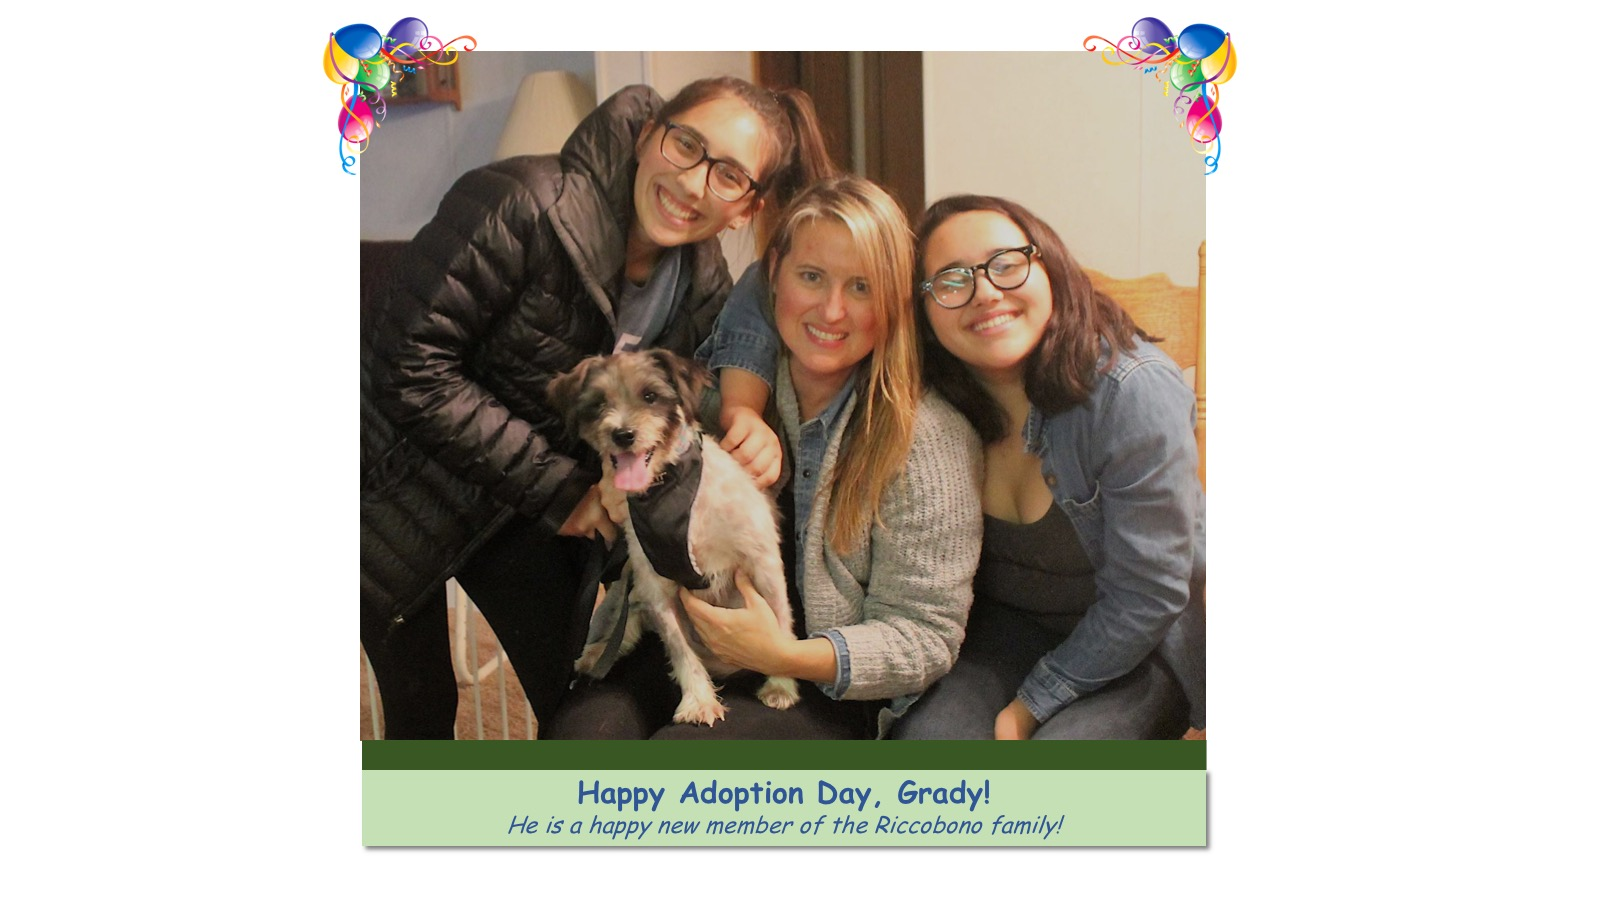 Grady_Adoption_Photo_2018.jpg